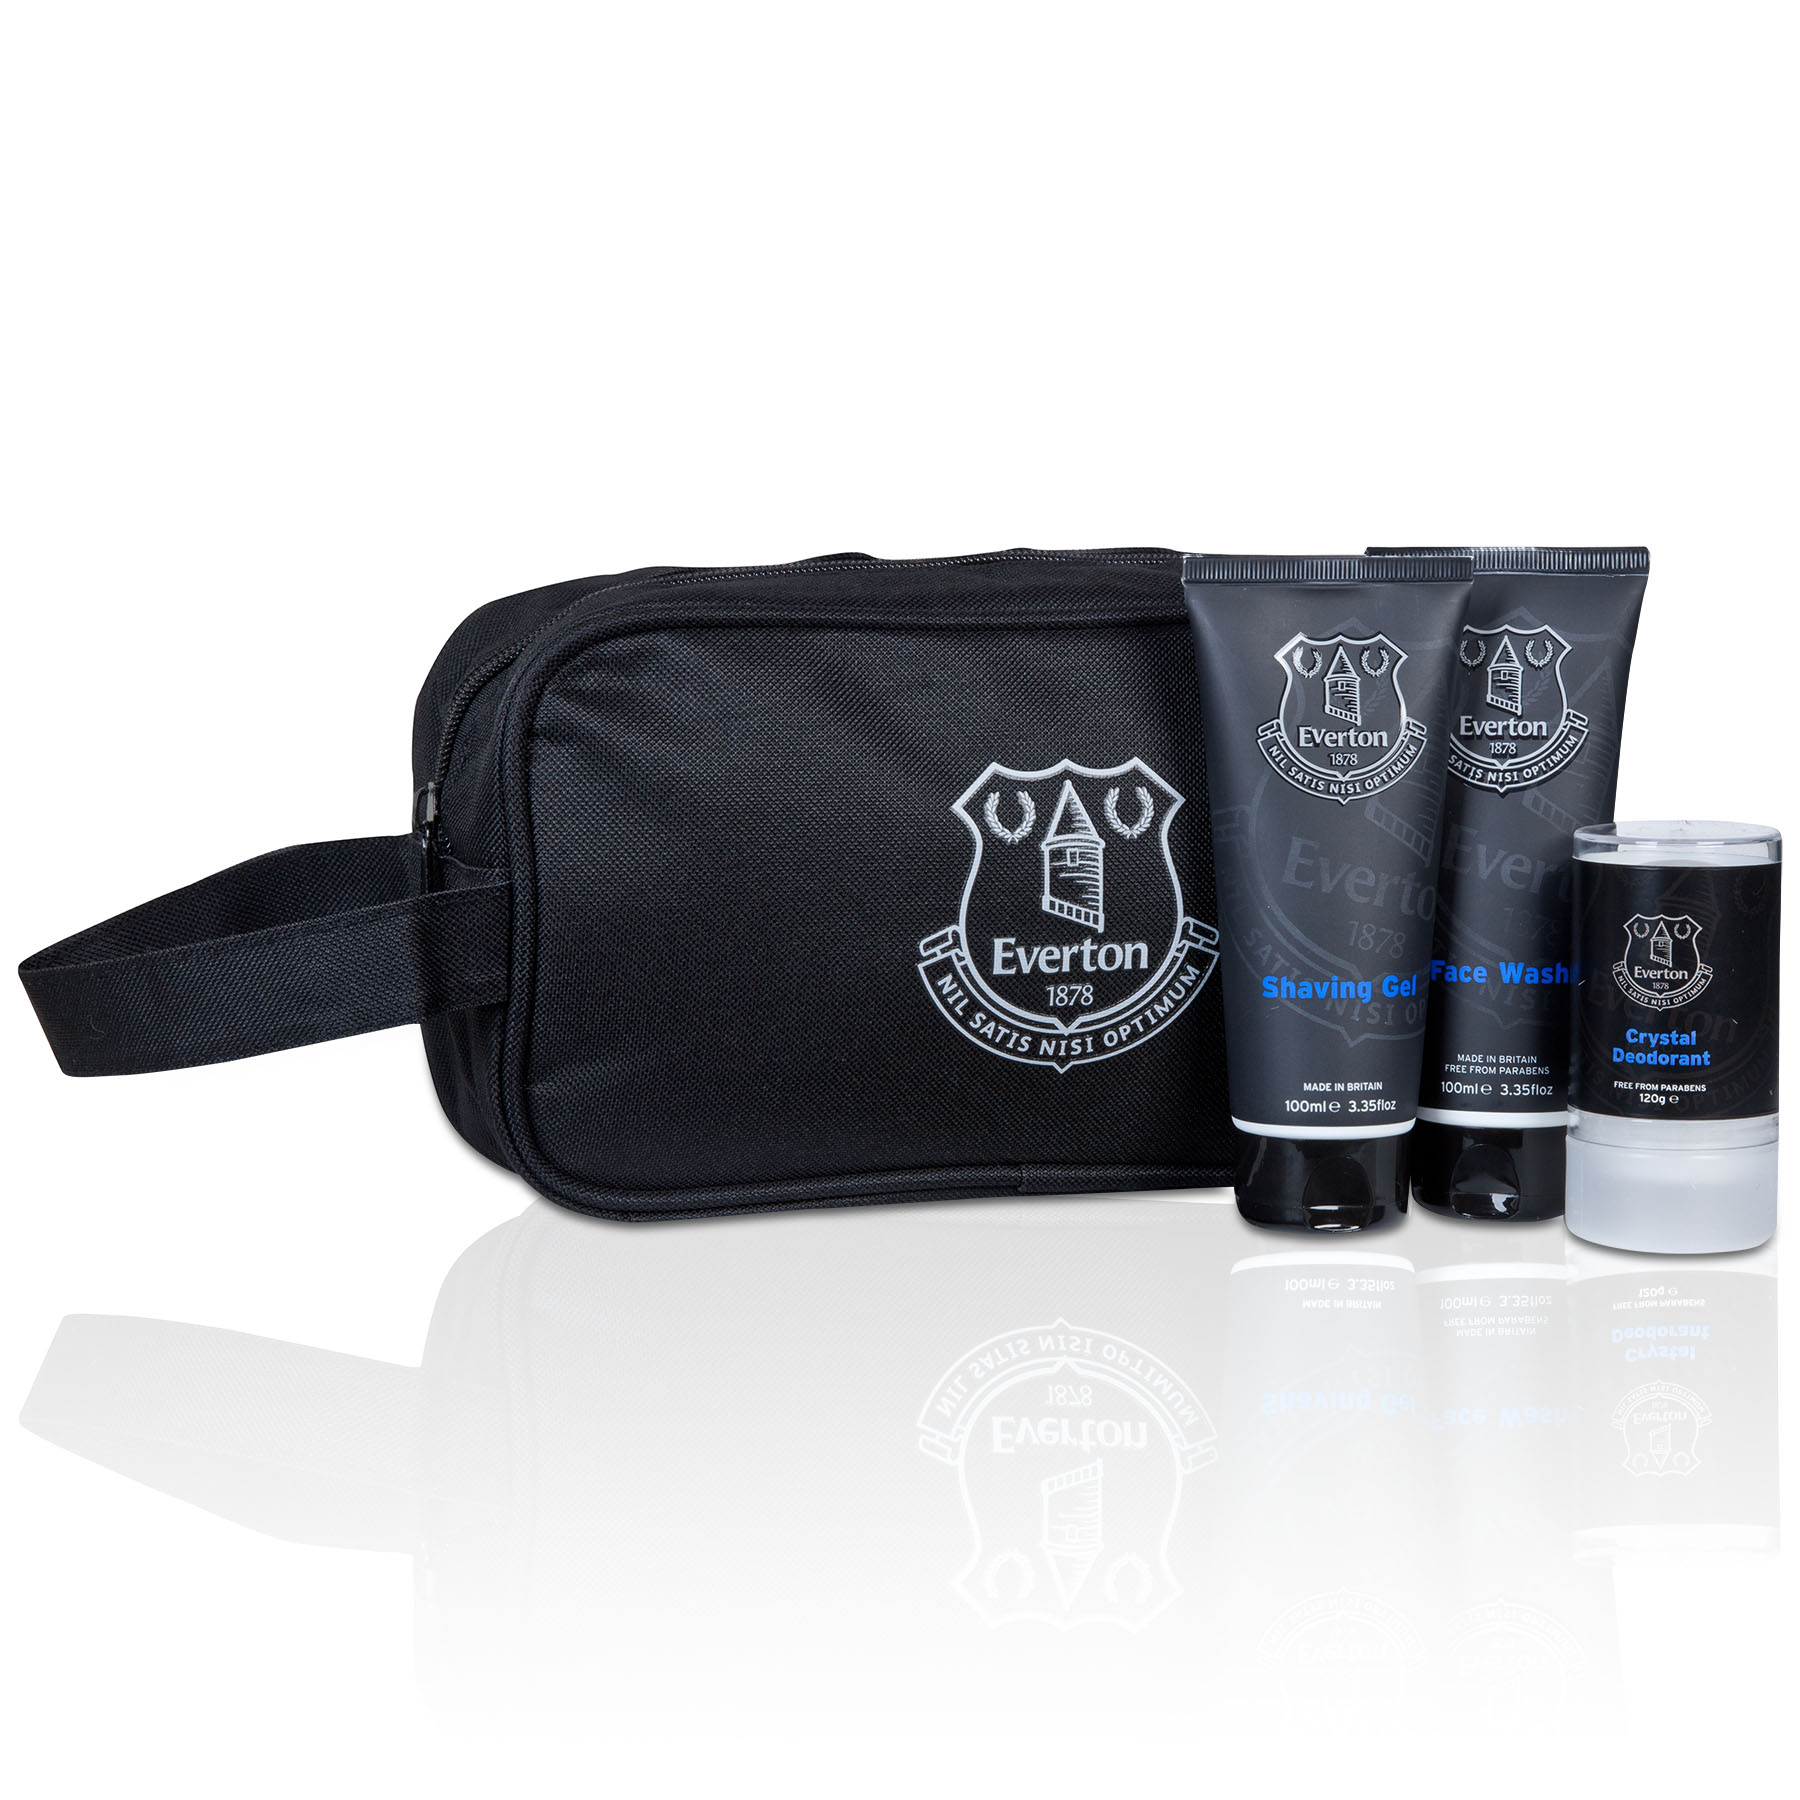 Everton Travel Set